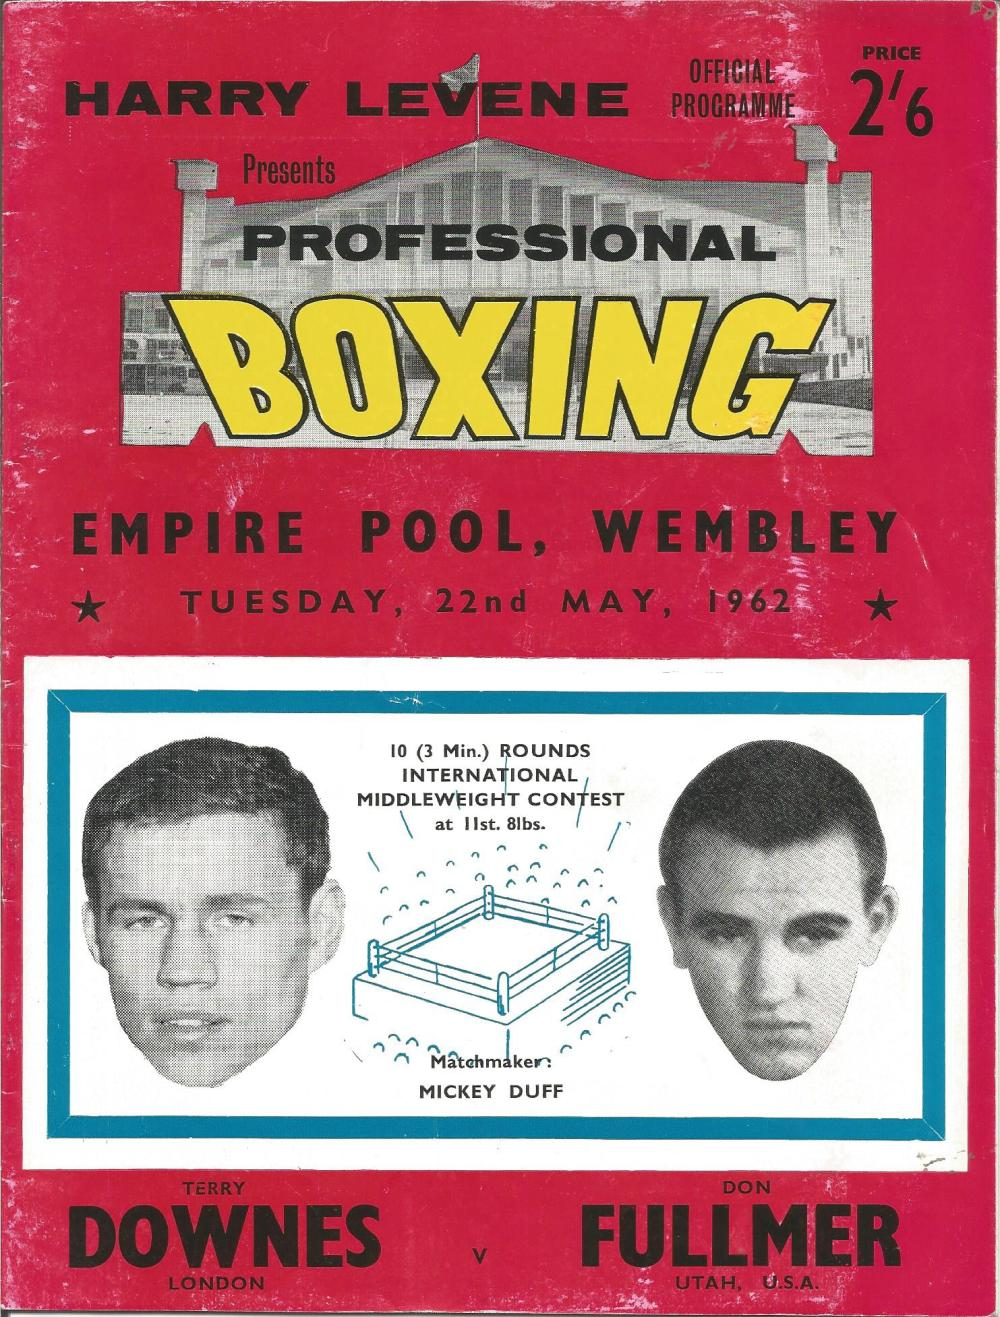 Boxing Terry Downes v Don Fullmer vintage fight programme Empire Pool Wembley 22nd May 1962. Good